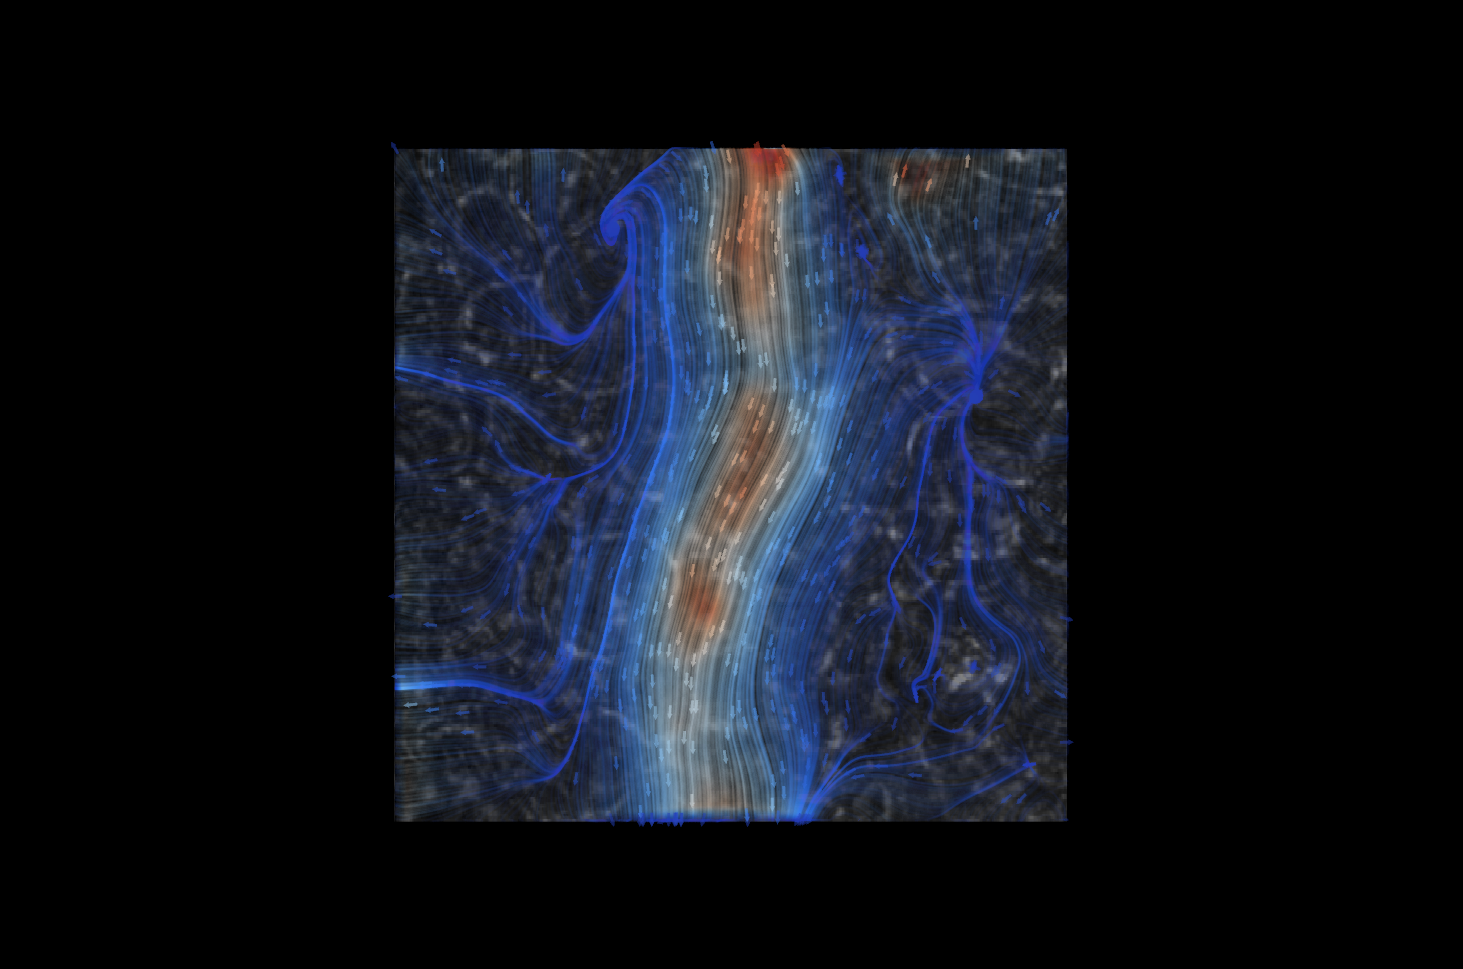 Cilia-driven mucus flow visualization by David Borland